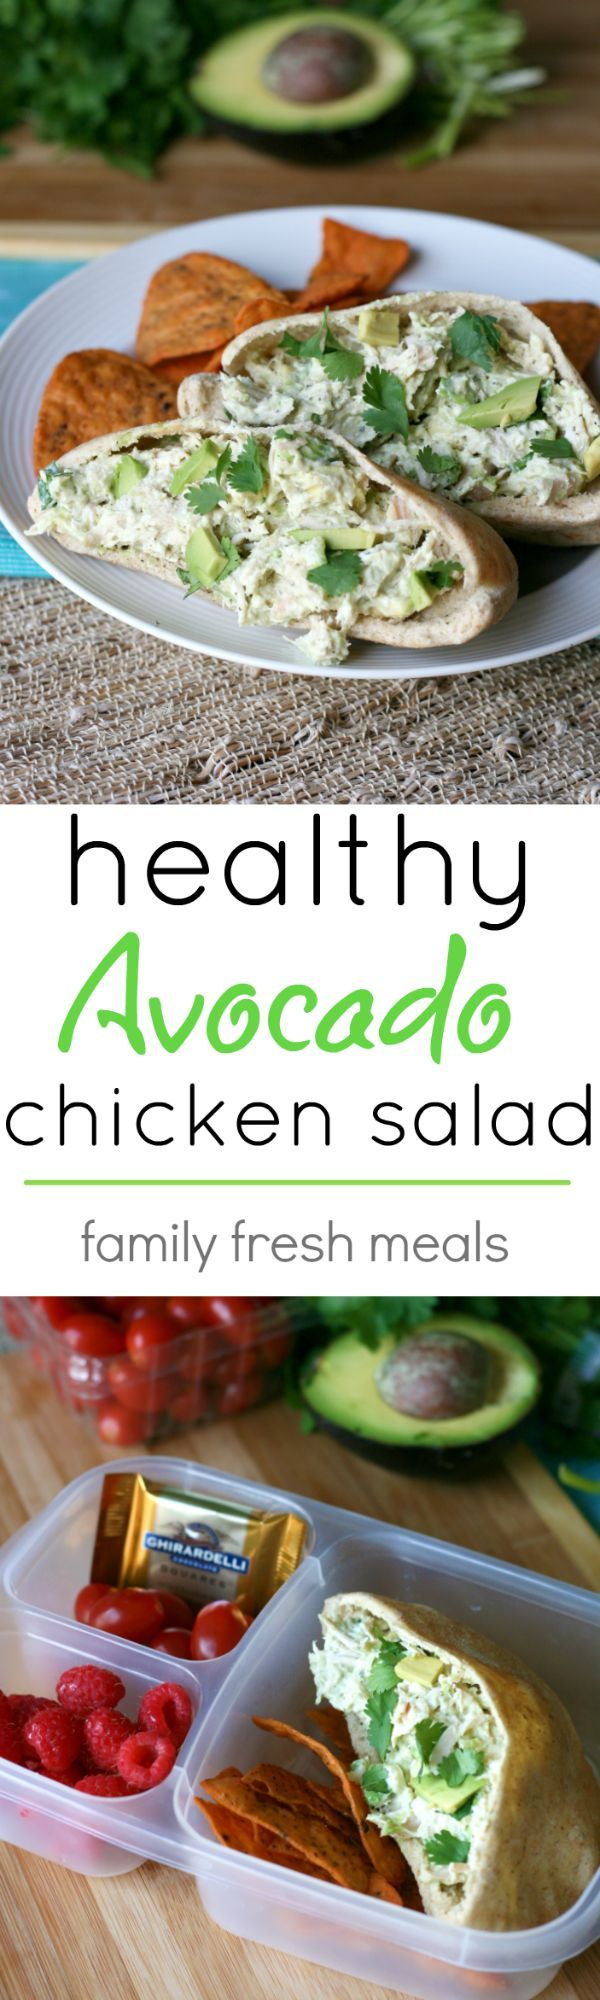 Healthy Avocado Chicken Salad Recipe - If you love chicken salad and avocados, then you are going to go ga-ga for this recipe!